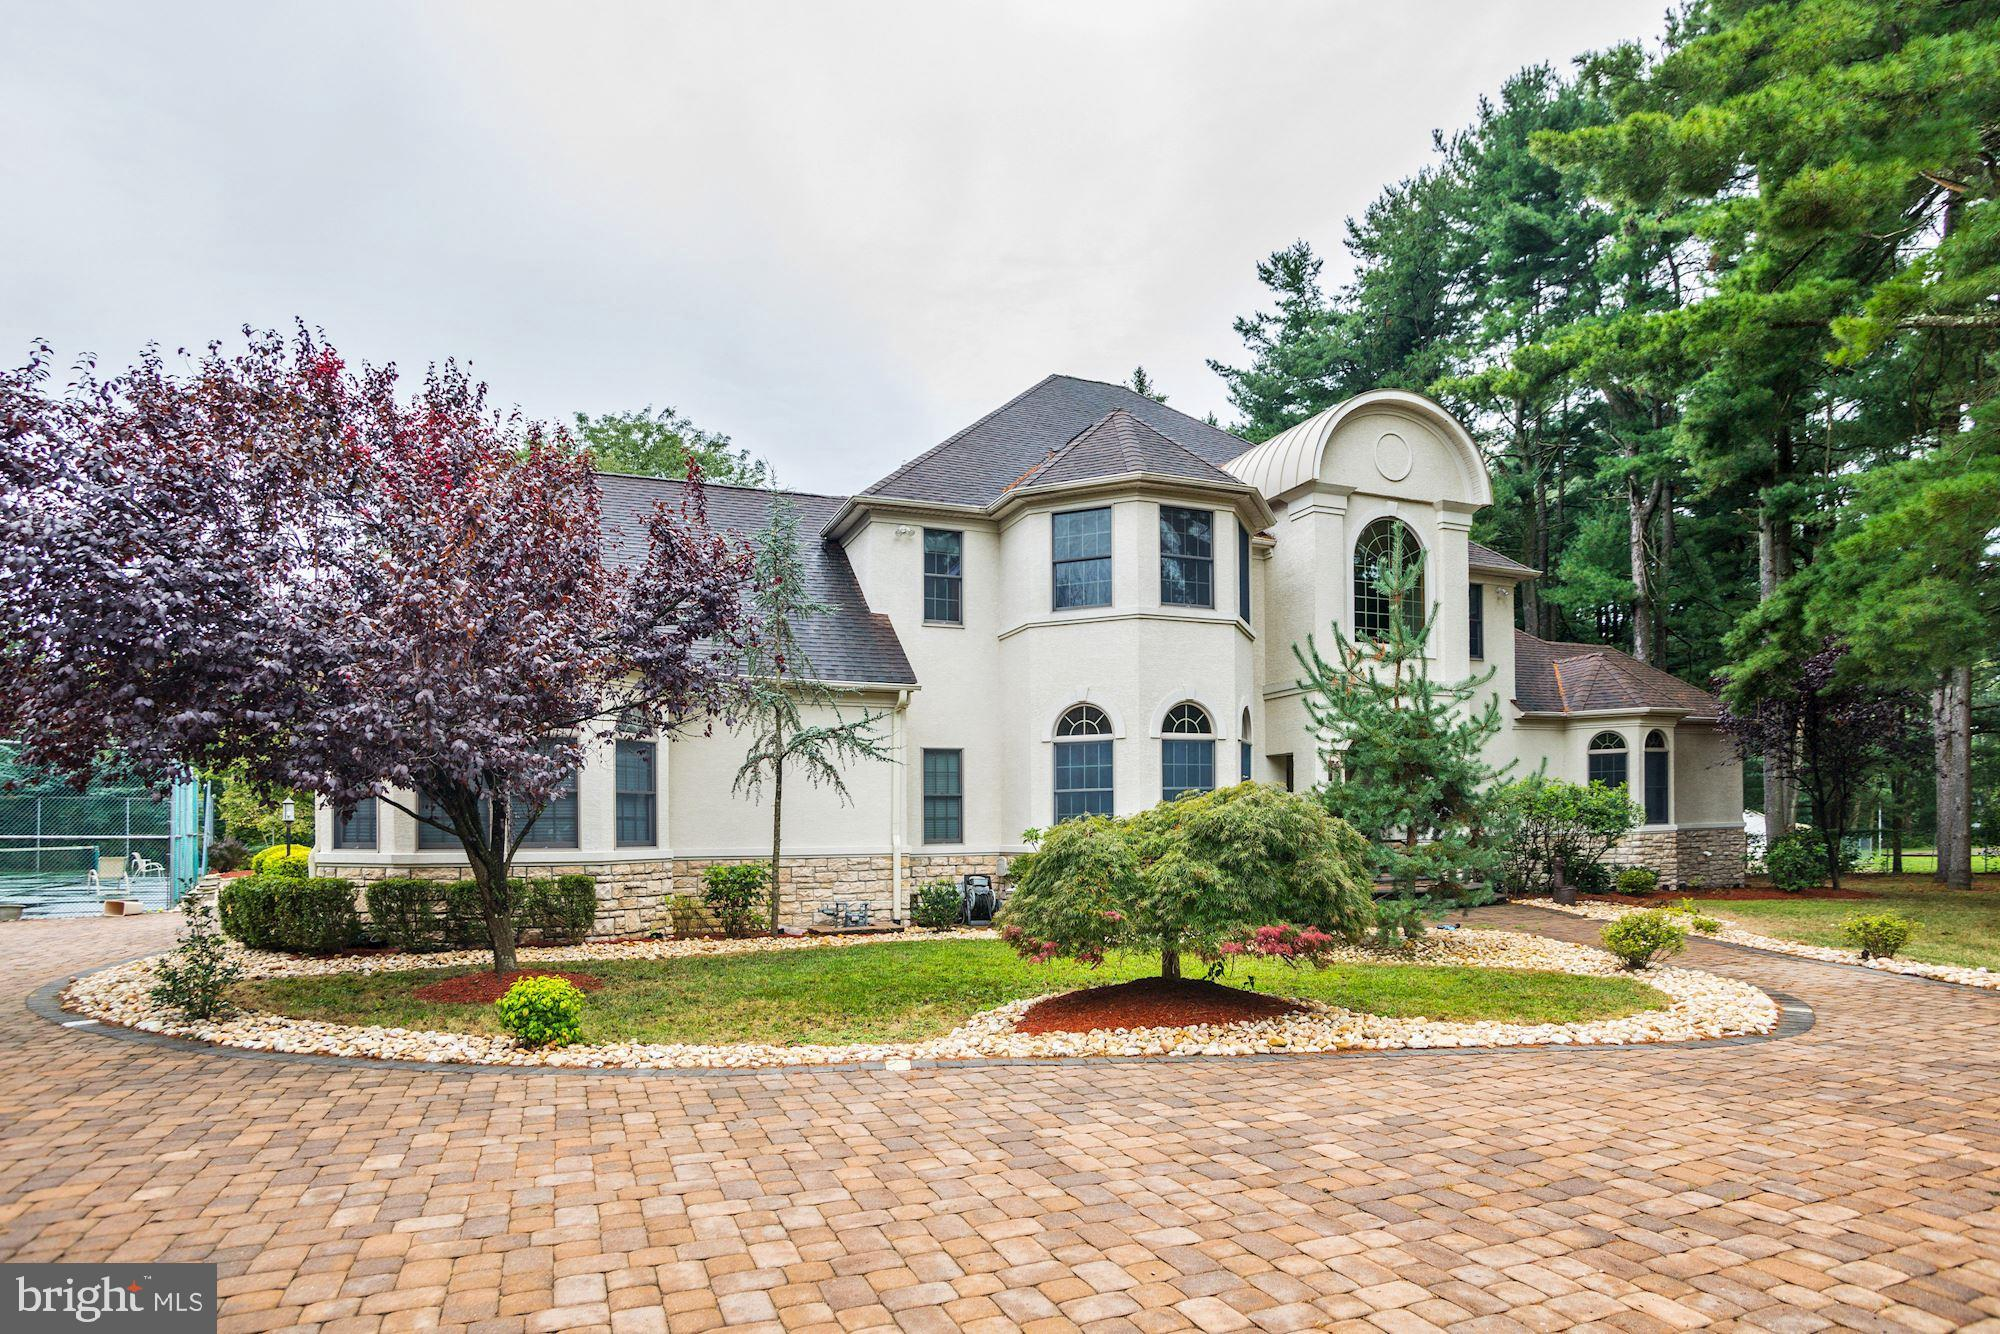 740 KRESSON ROAD, CHERRY HILL, NJ 08003